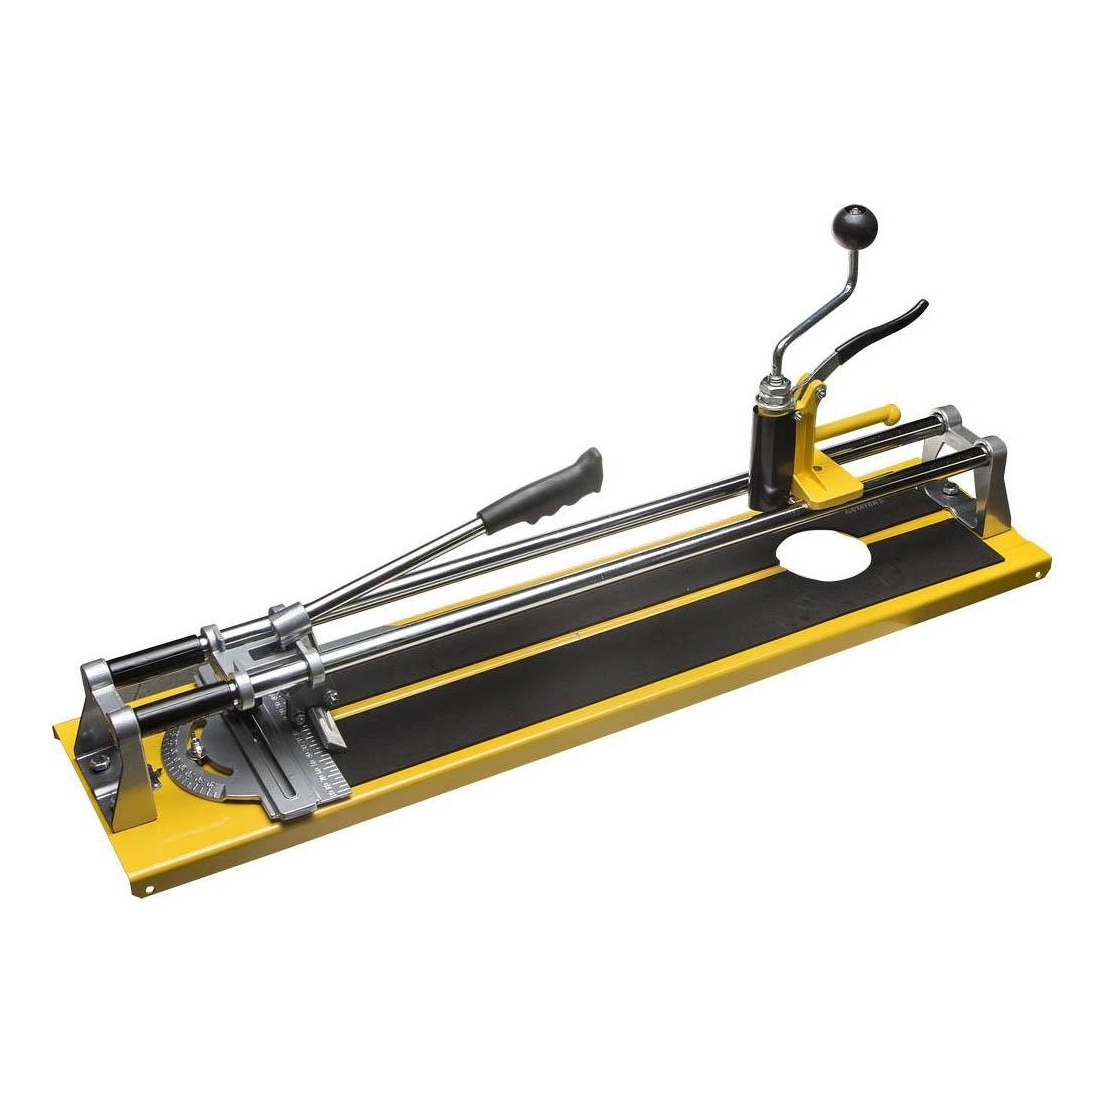 Tile cutter STAYER 3310-60